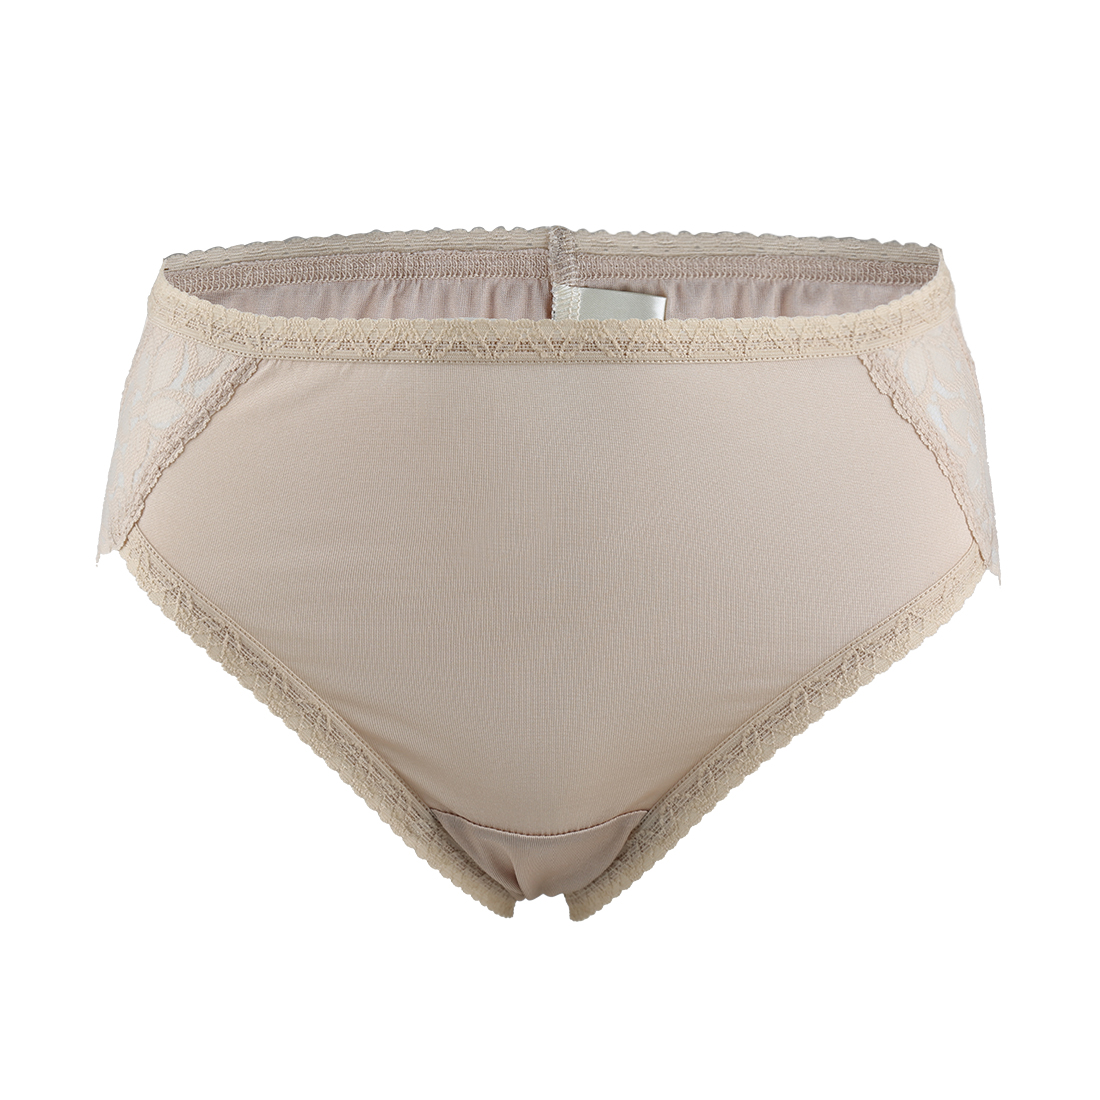 Women Mulberry Silk Laced Breathable Translucent Hi-Cut Panties Beige Large